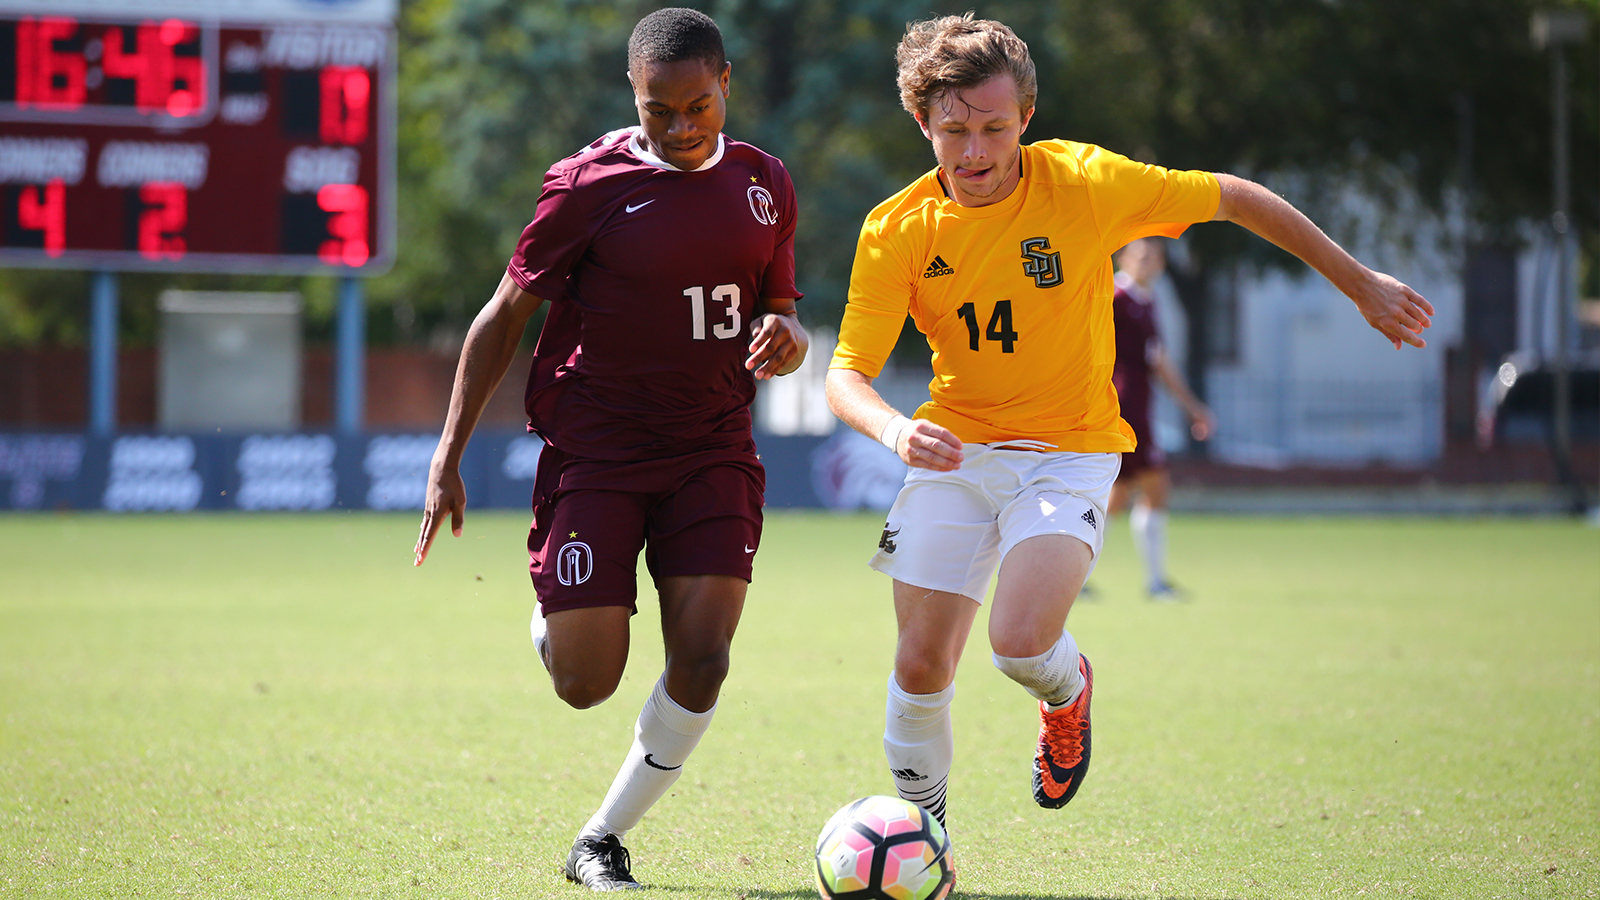 Pirates Can't Overcome Early Goals in Road Loss to No. 2 Trinity